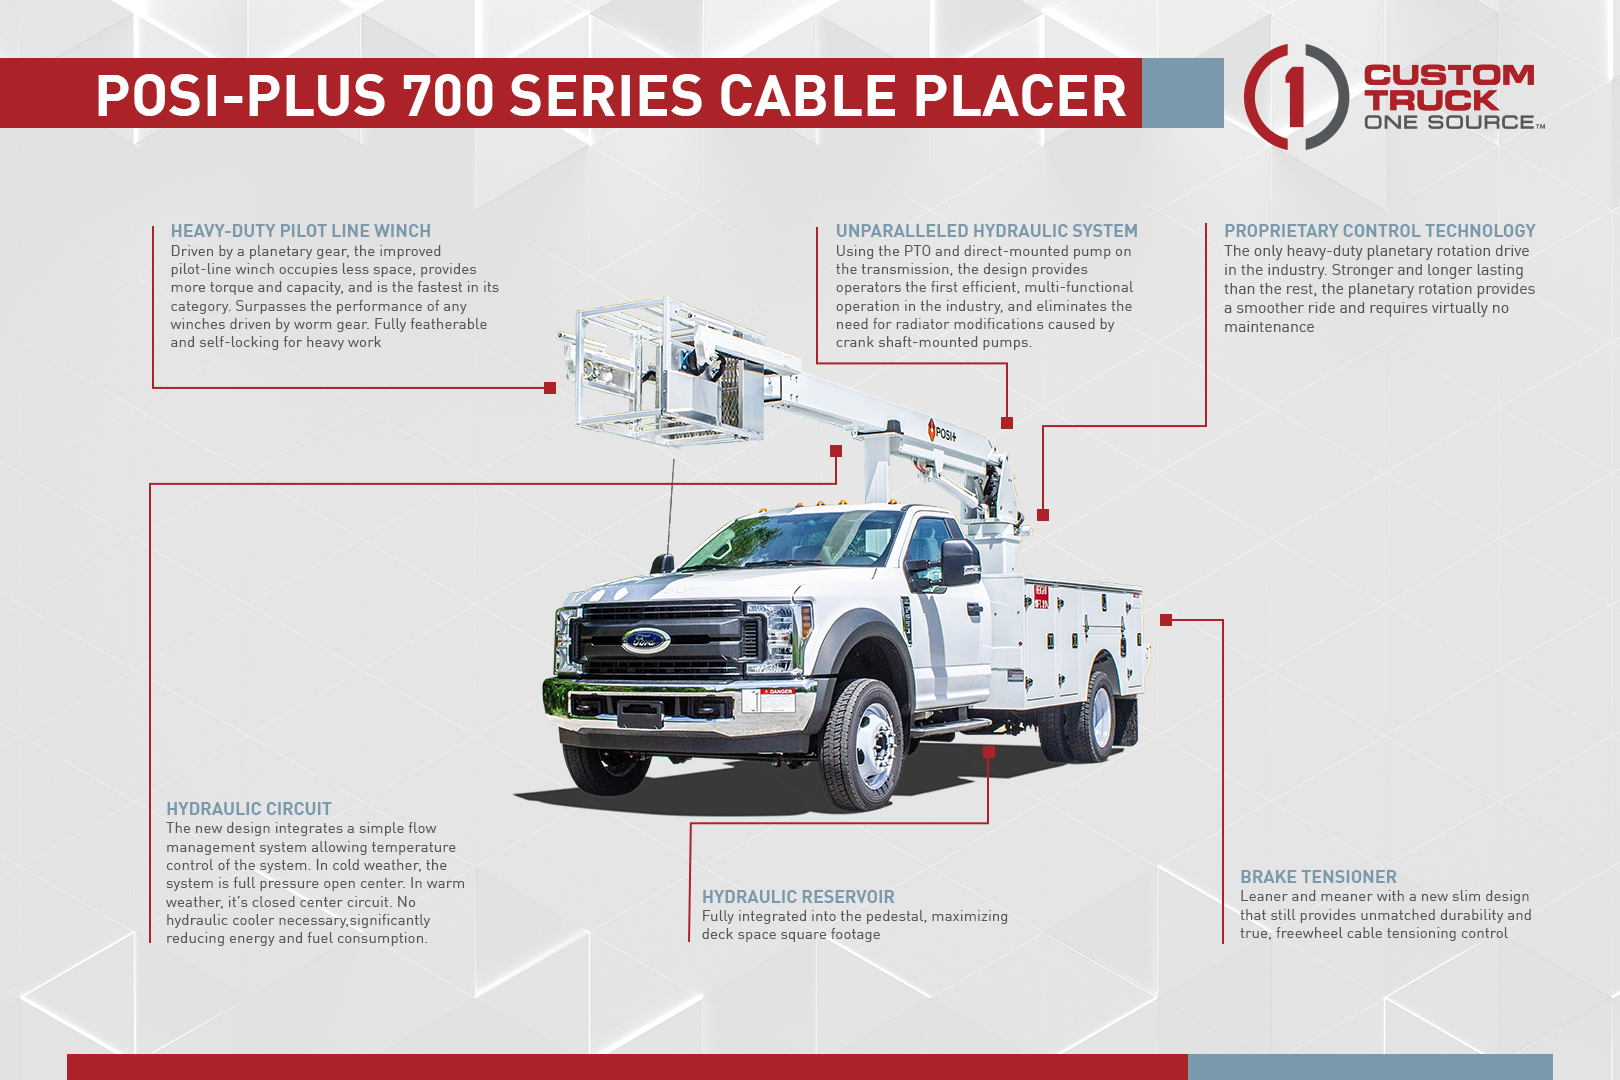 POSI-Plus 700 Cable Placer Infographic